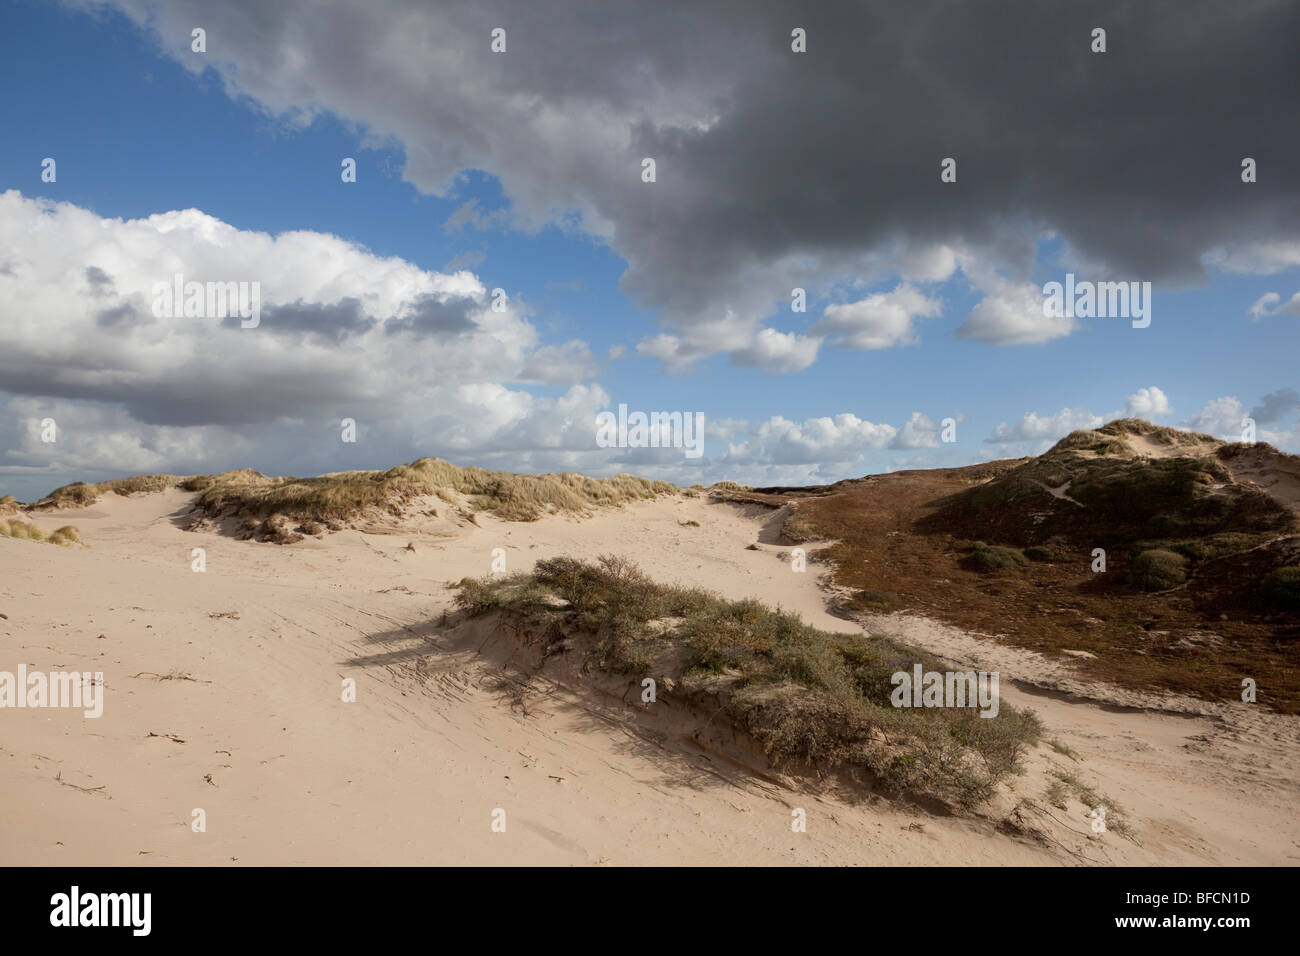 Dunes in Holland - Stock Image